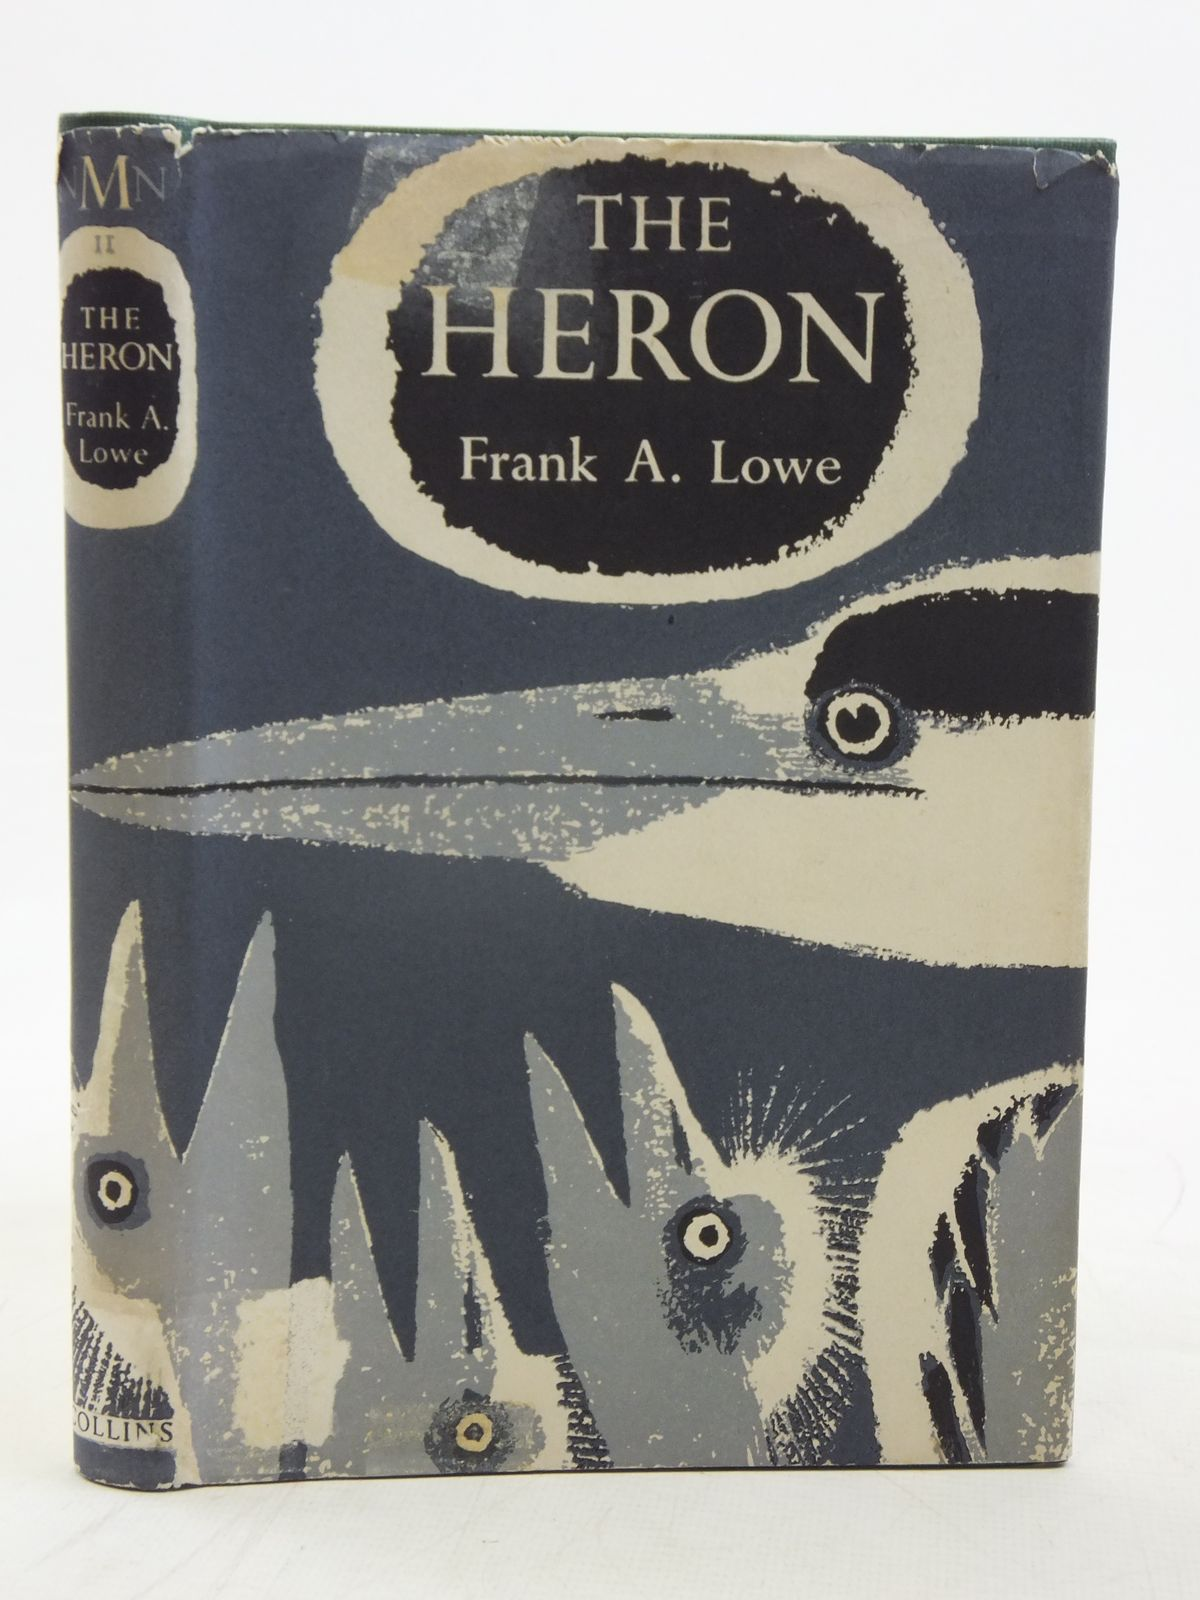 Photo of THE HERON (NMN 11) written by Lowe, Frank A. published by Collins (STOCK CODE: 2116251)  for sale by Stella & Rose's Books